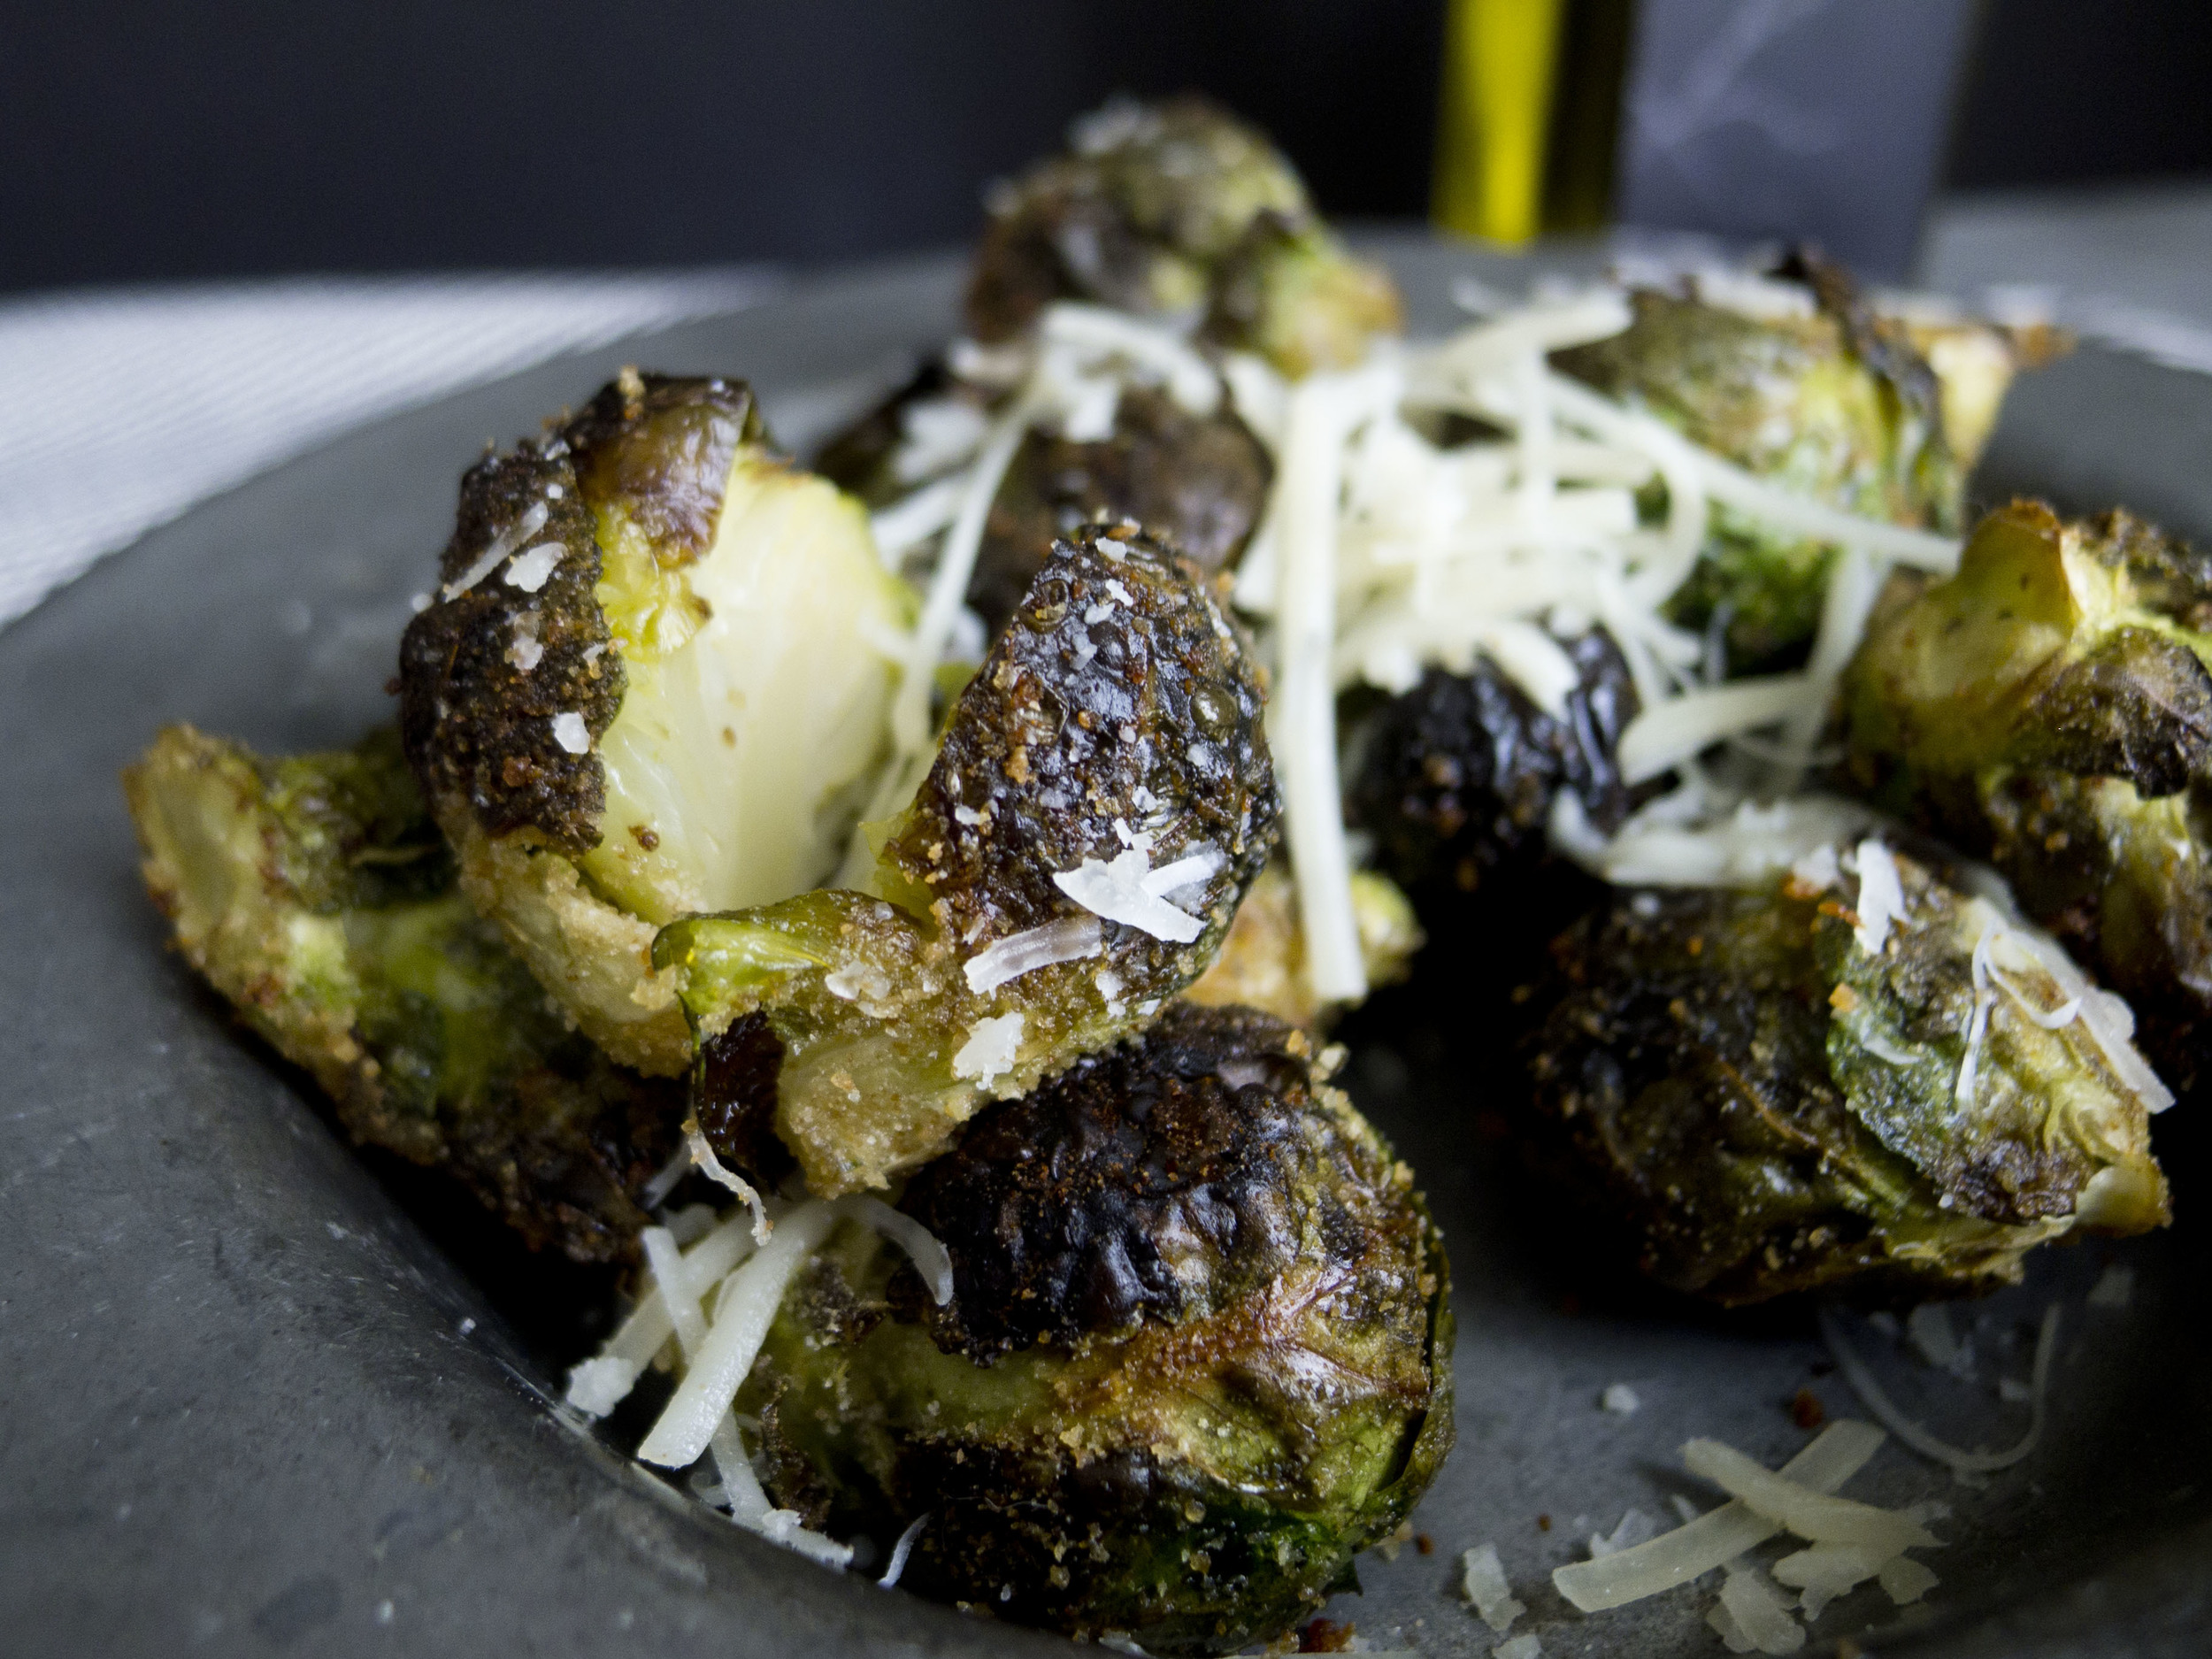 roasted brussels sprouts with cheese and balsamic